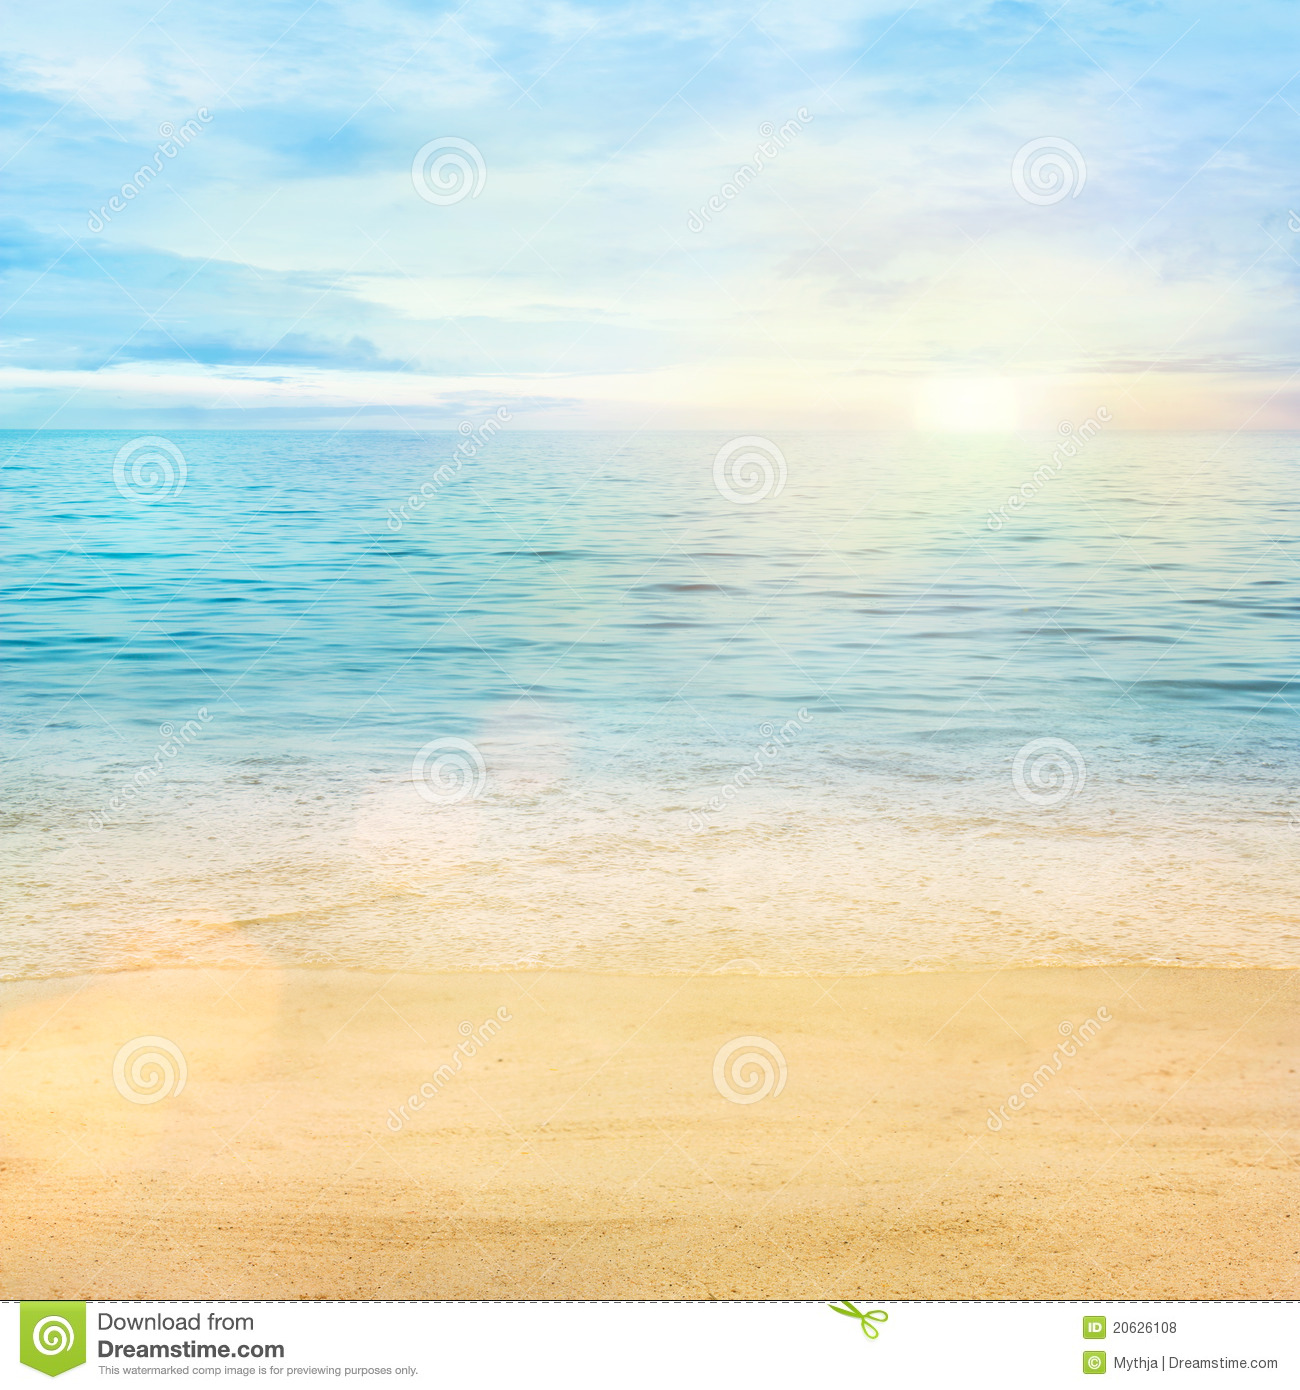 Sand Beach In Summer Sky Background: Sea Of Sand Clipart 20 Free Cliparts